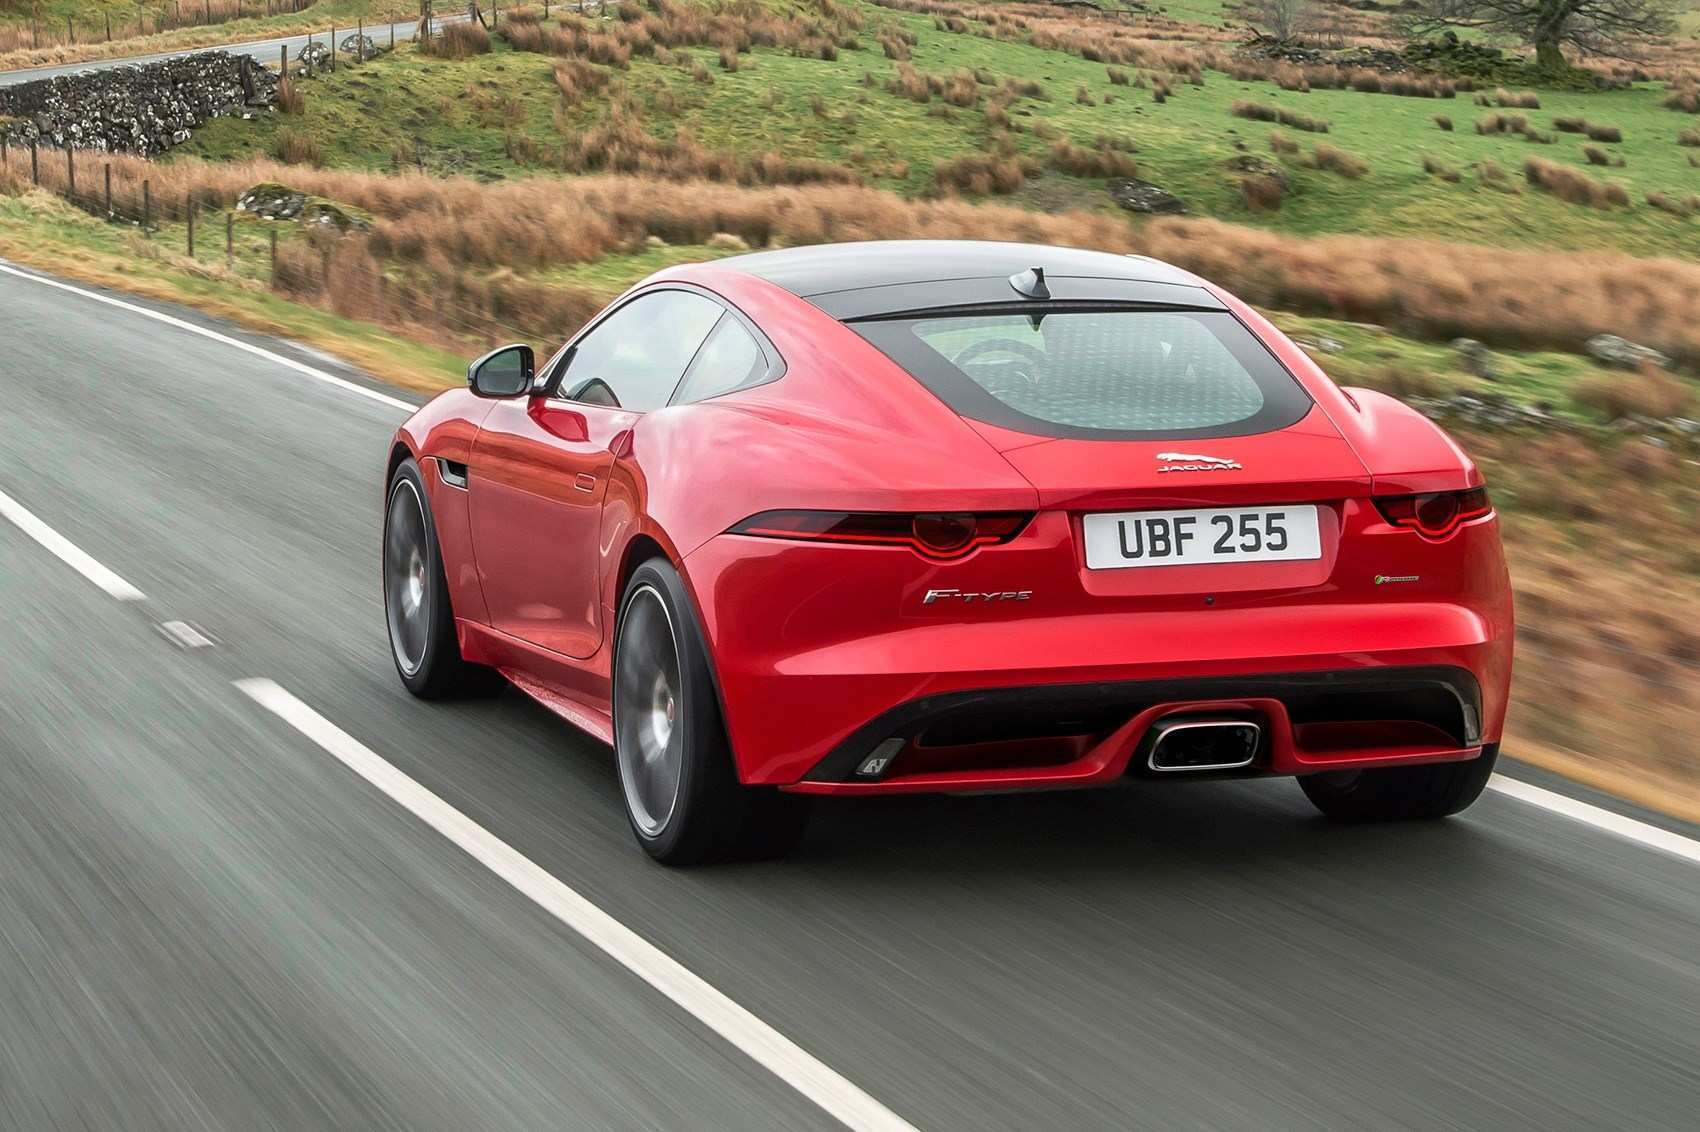 64 Great Jaguar F Type 2020 Exterior Research New for Jaguar F Type 2020 Exterior